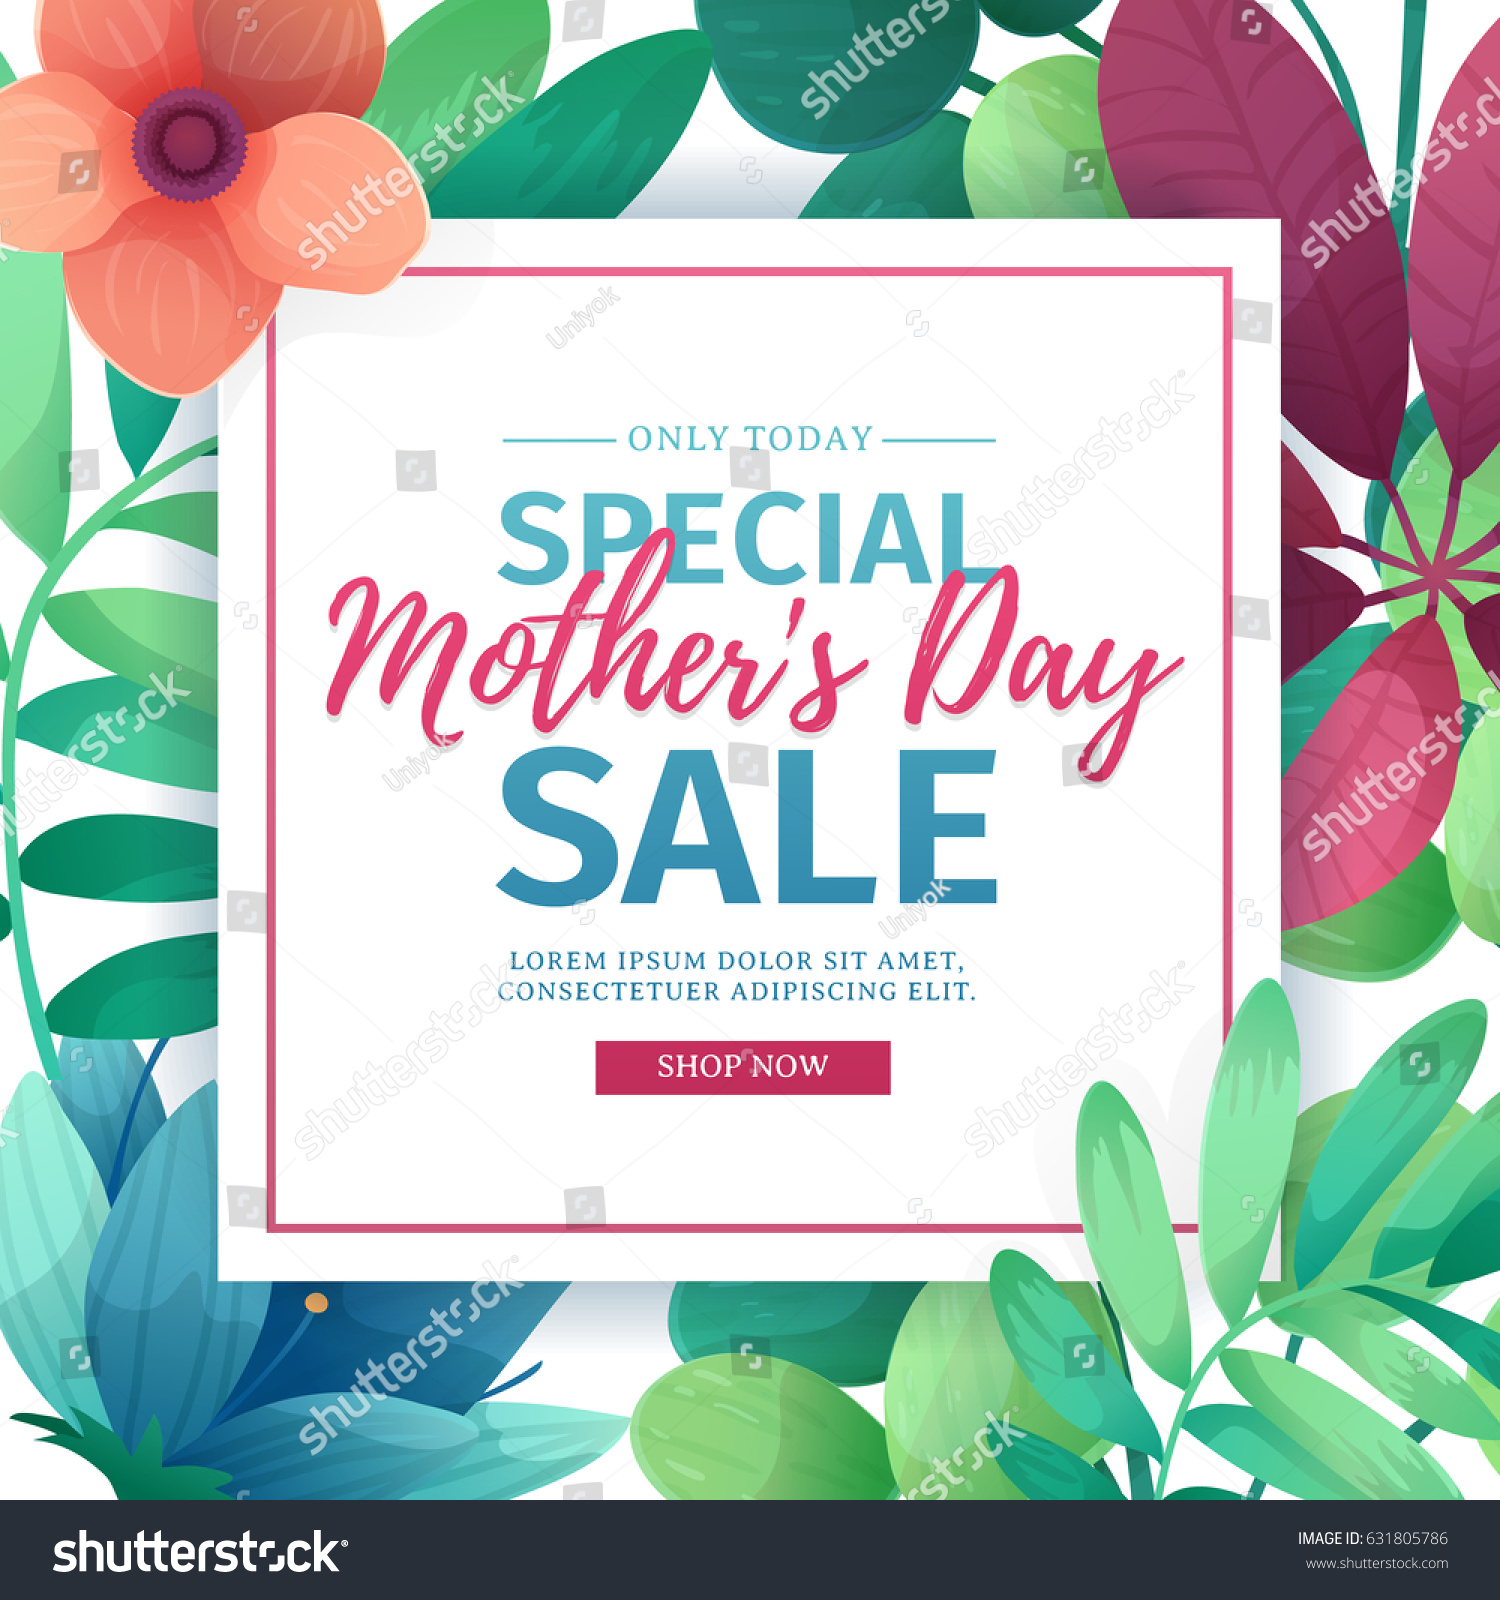 Mothers Day Storewide Sale Template: Template Design Discount Banner Happy Mothers Stock Vector